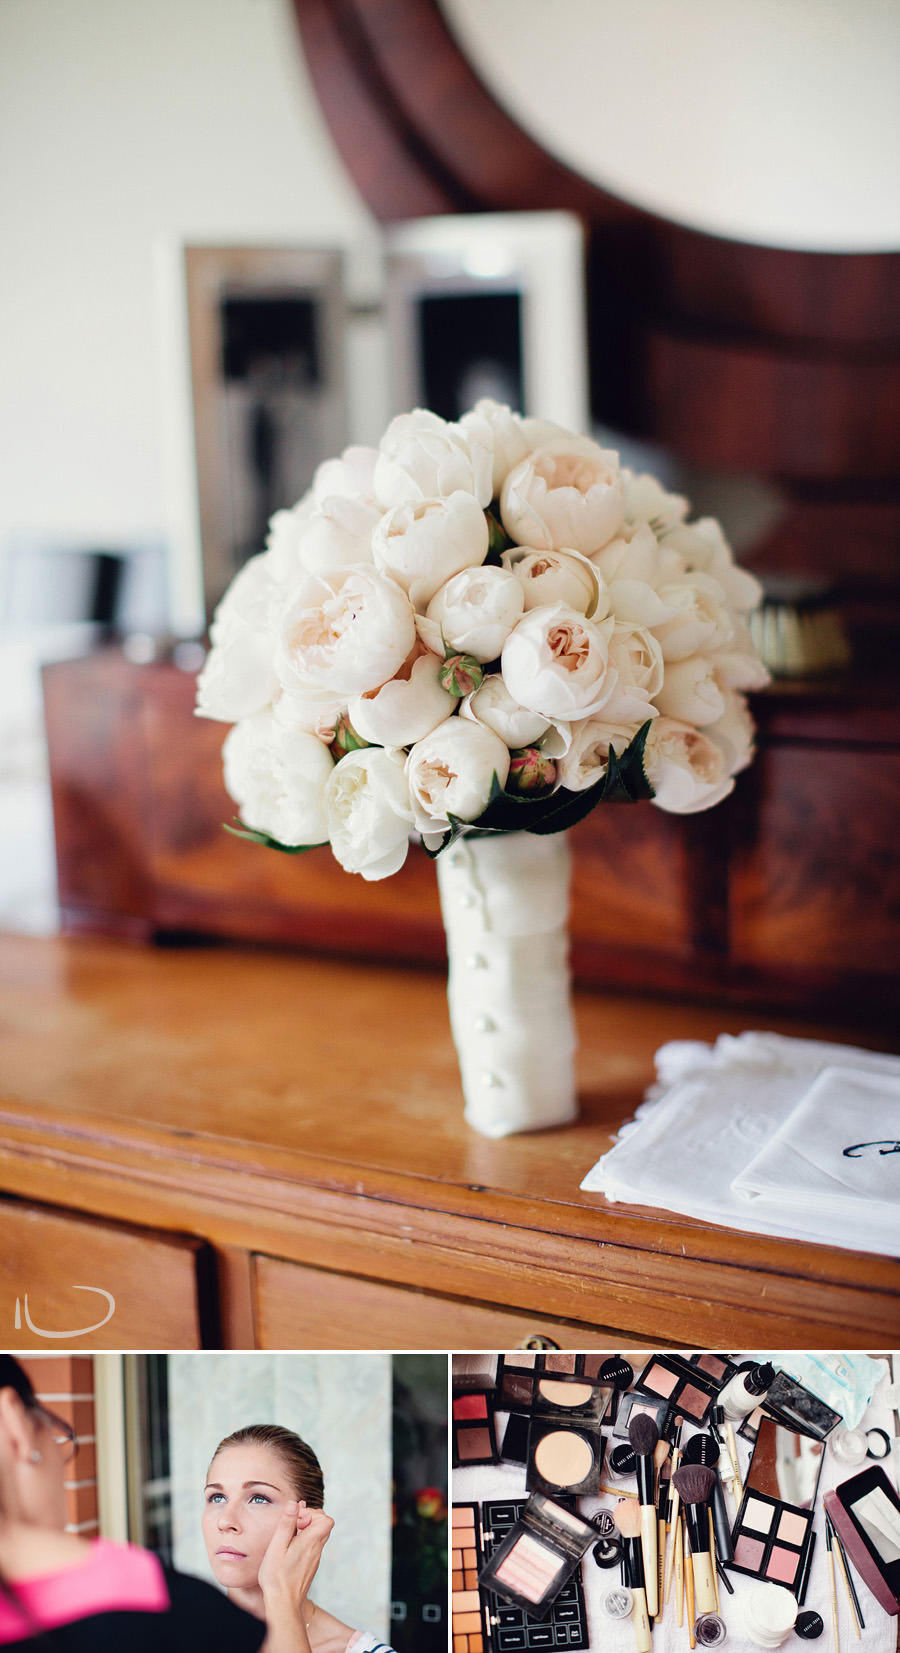 Sydney Wedding Photography: Bride's bouquet on parents dresser